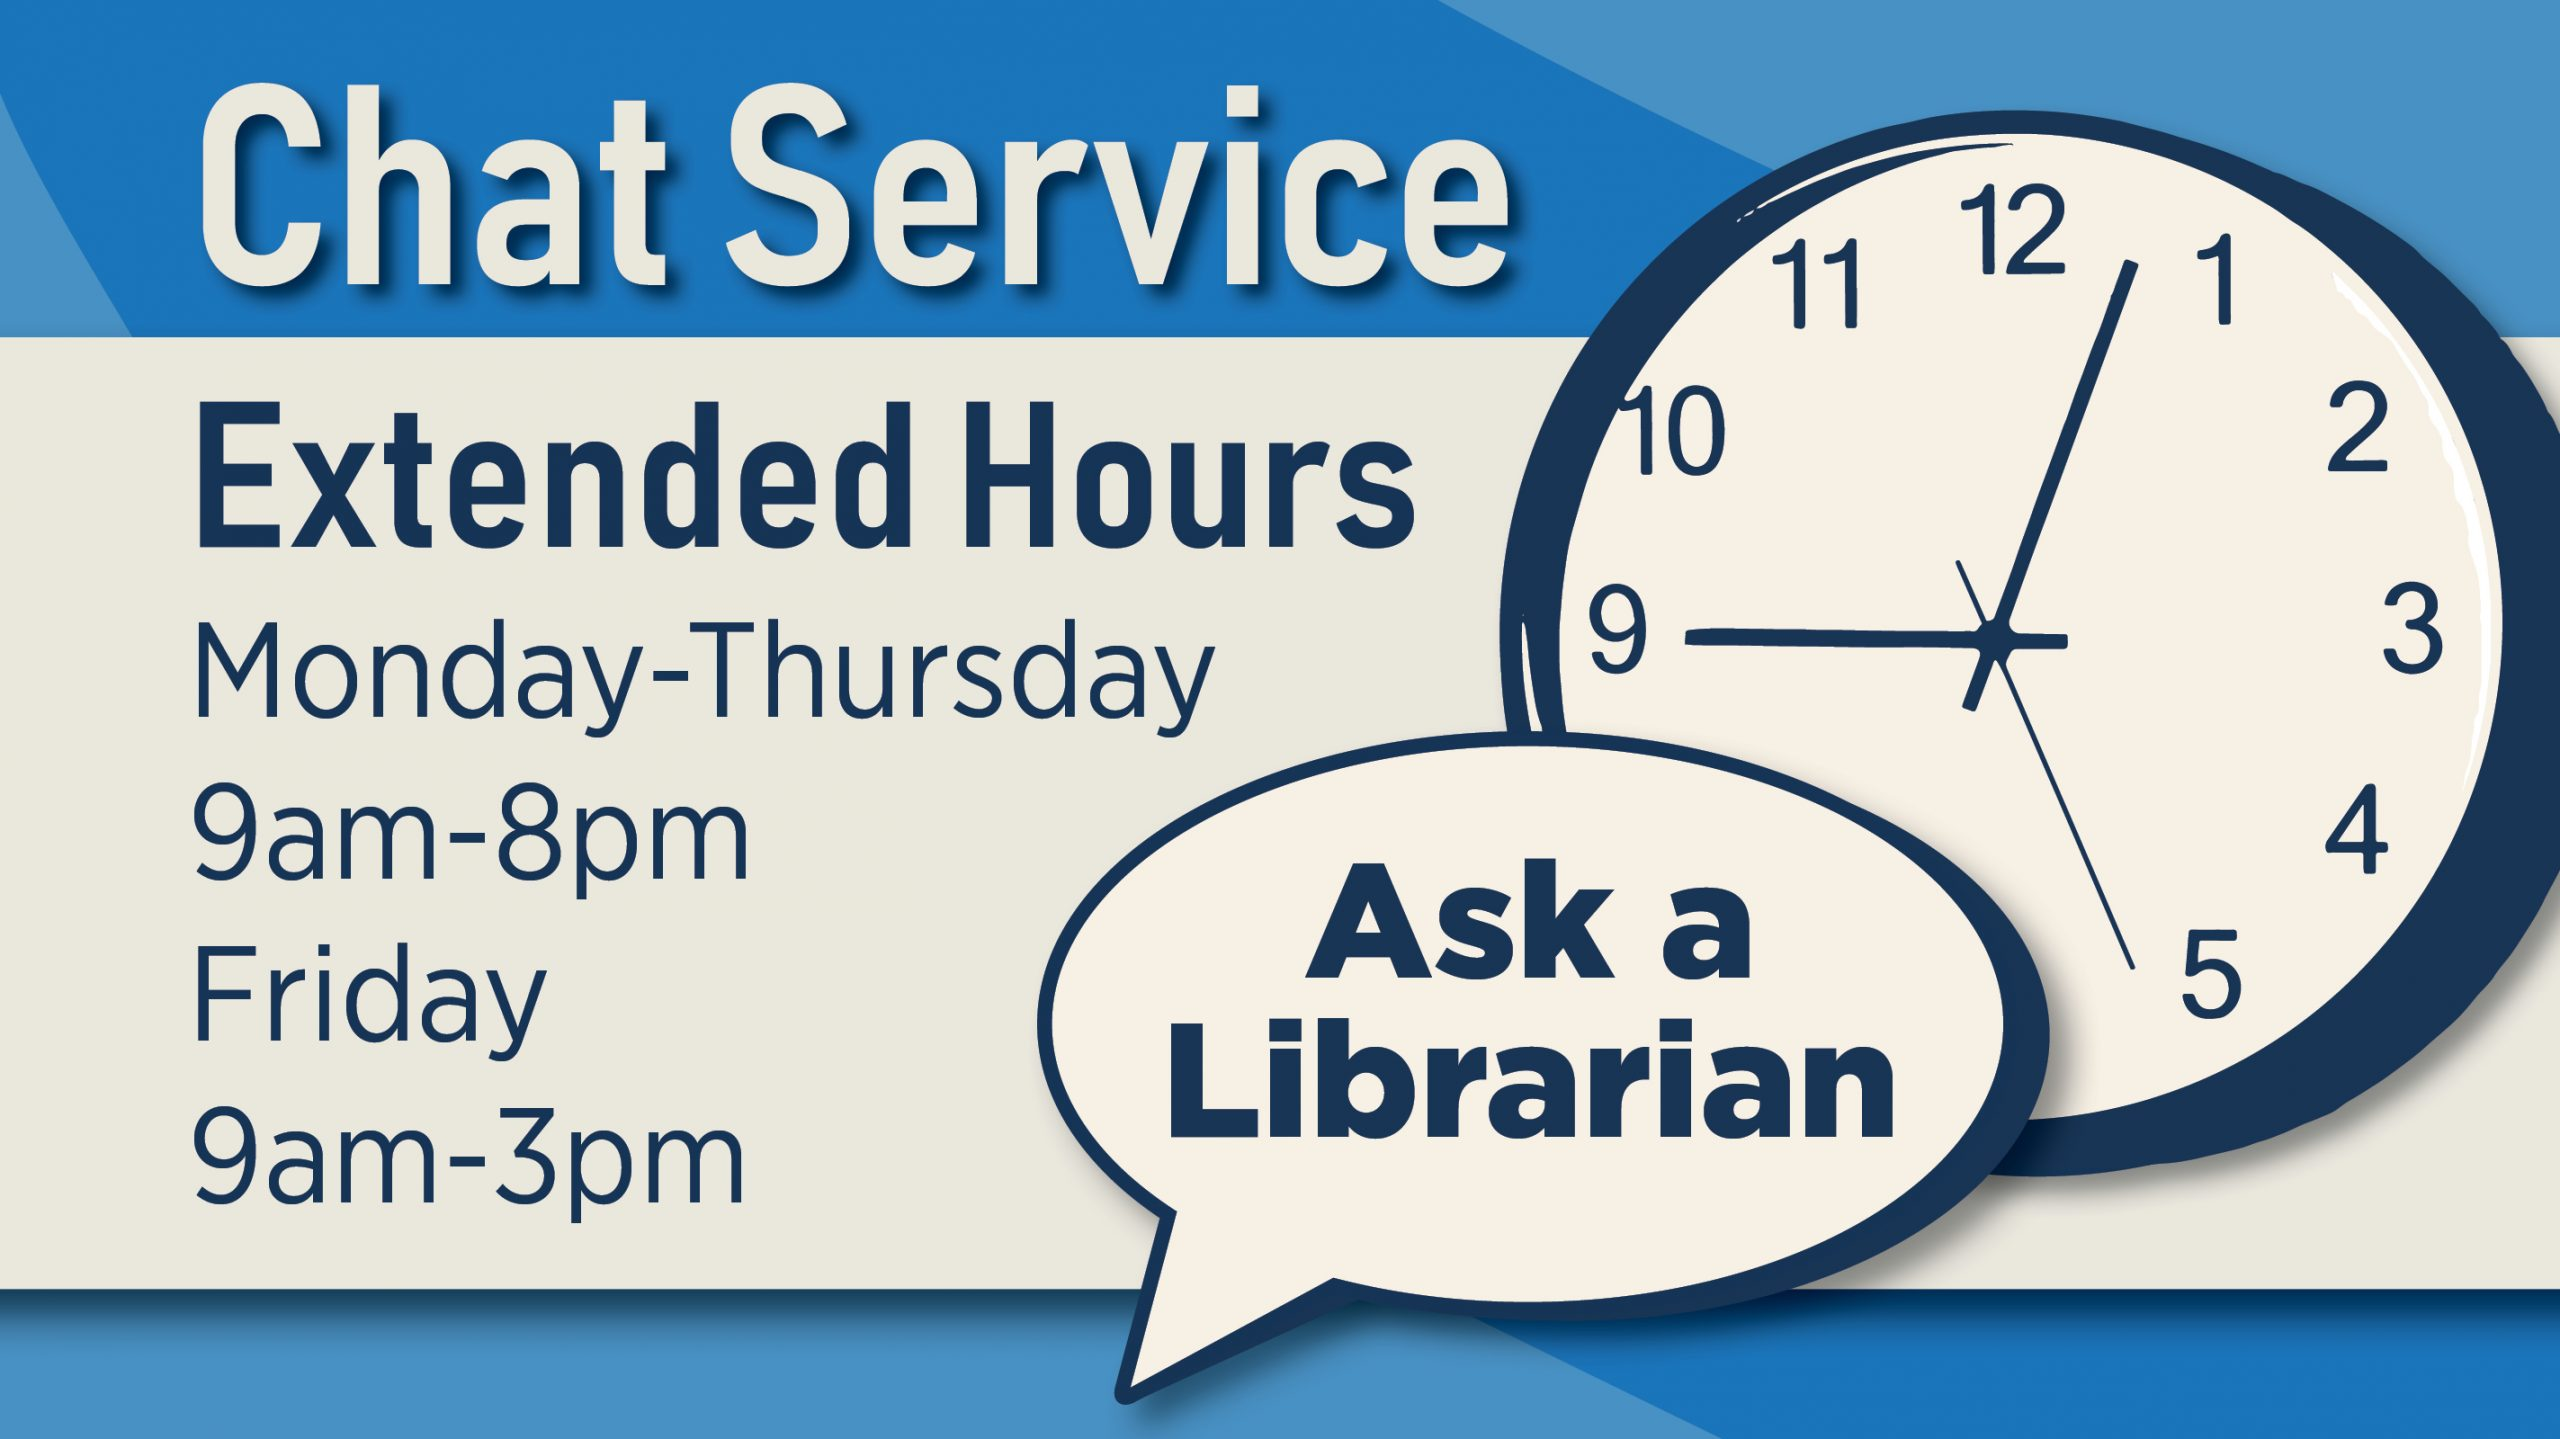 Chat Service, Extended Hours, Monday-Thursday 9am-8pm Friday 9am-3pm, Ask a Librarian